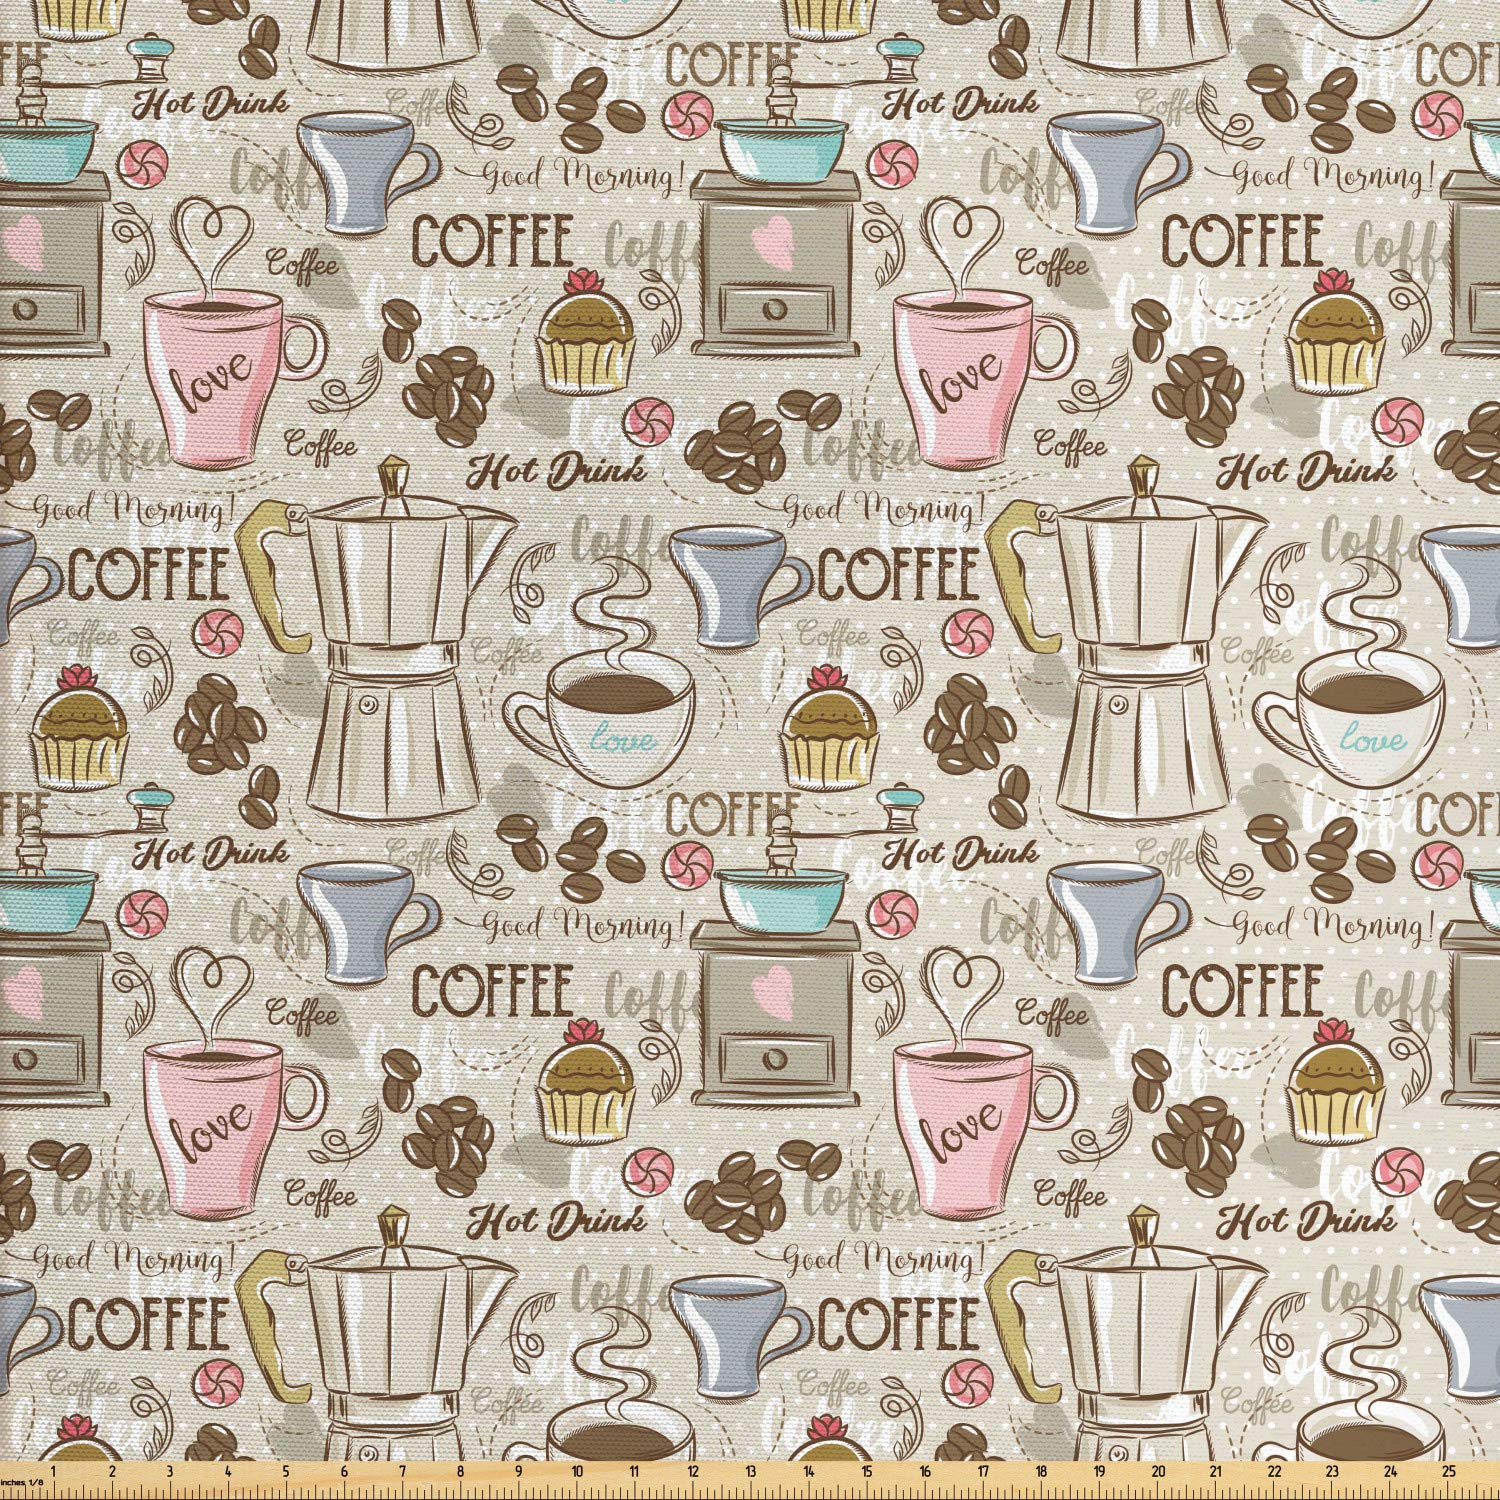 Ambesonne Modern Fabric by The Yard, Coffee Time Vintage Espresso Machine Cupcakes Beans Cute Design, Decorative Fabric for Upholstery and Home Accents,10 Yards, Beige Pale Pink and Umber by Ambesonne (Image #1)